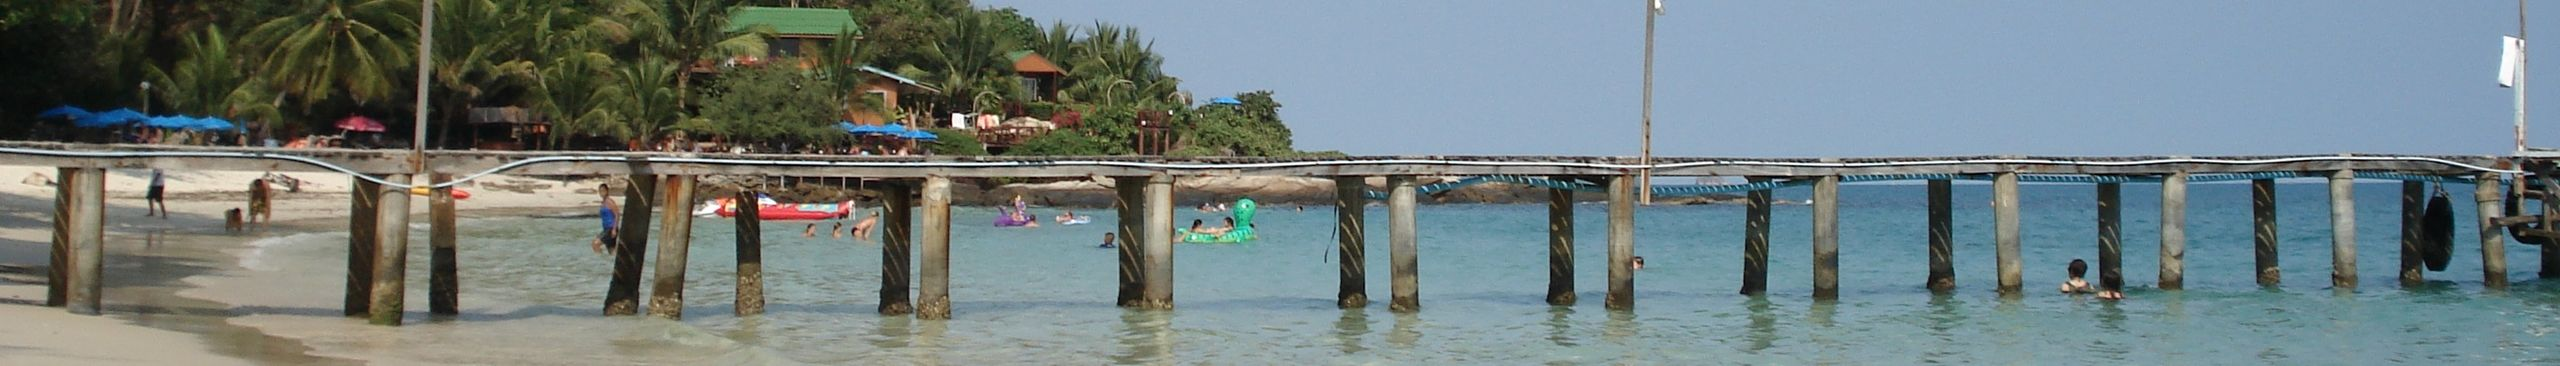 Ko Samet – Travel guide at Wikivoyage